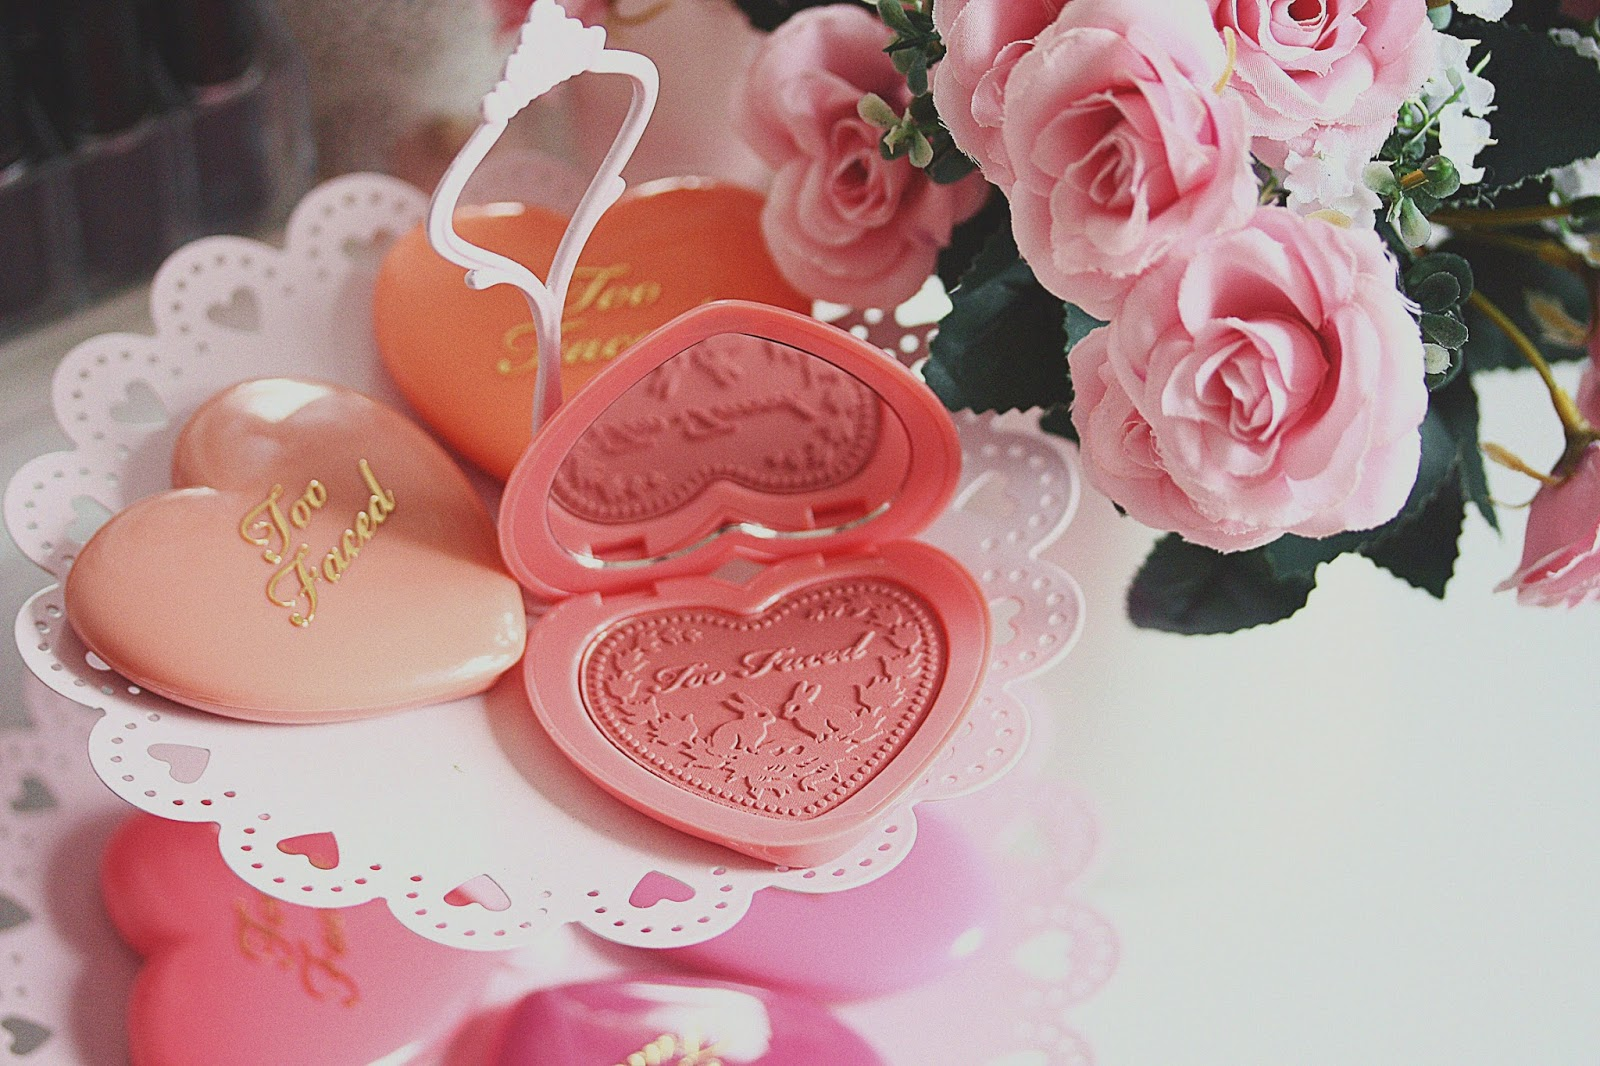 rosemademoiselle-toofaced-loveflush-blush-heart-review-swatch